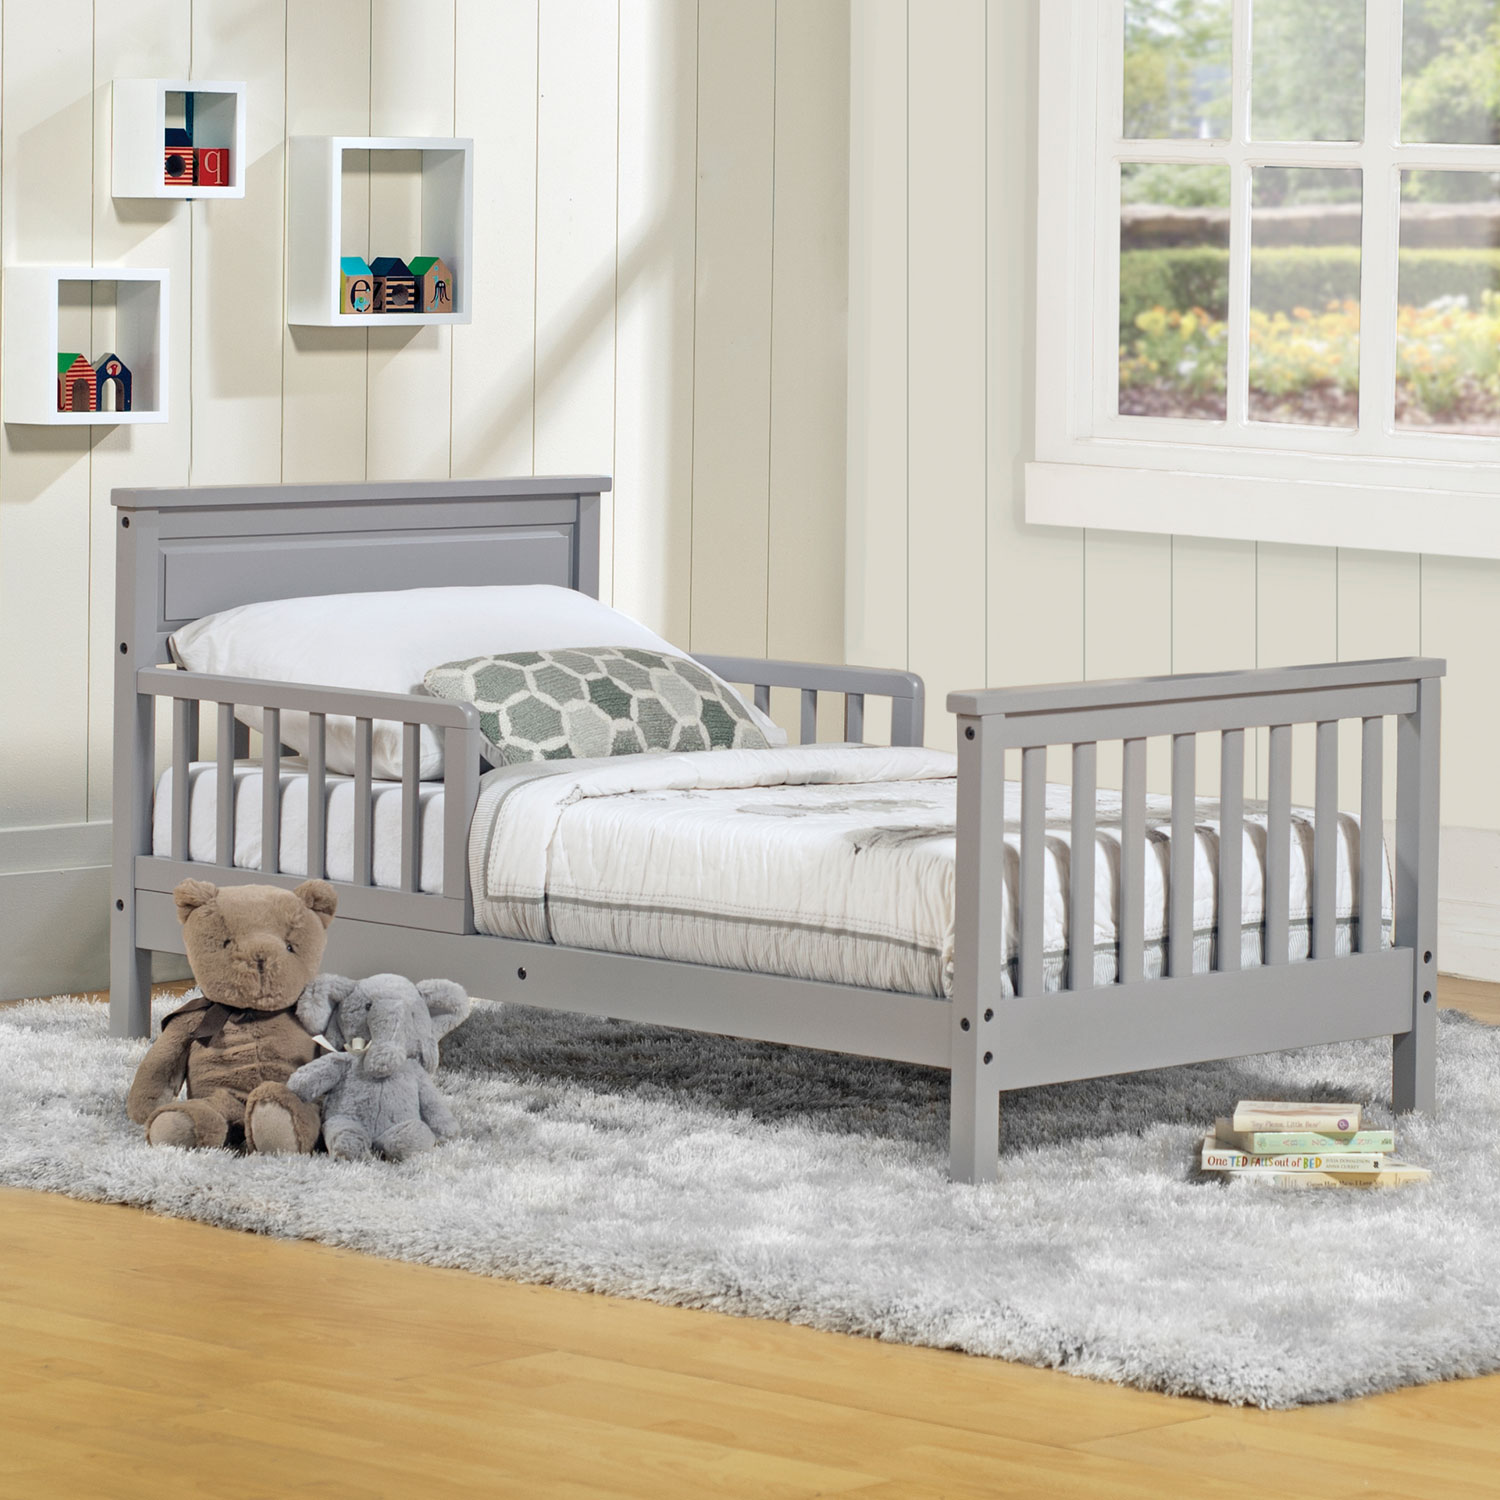 Is a Toddler Bed or Regular Bed Better For Your Growing ...